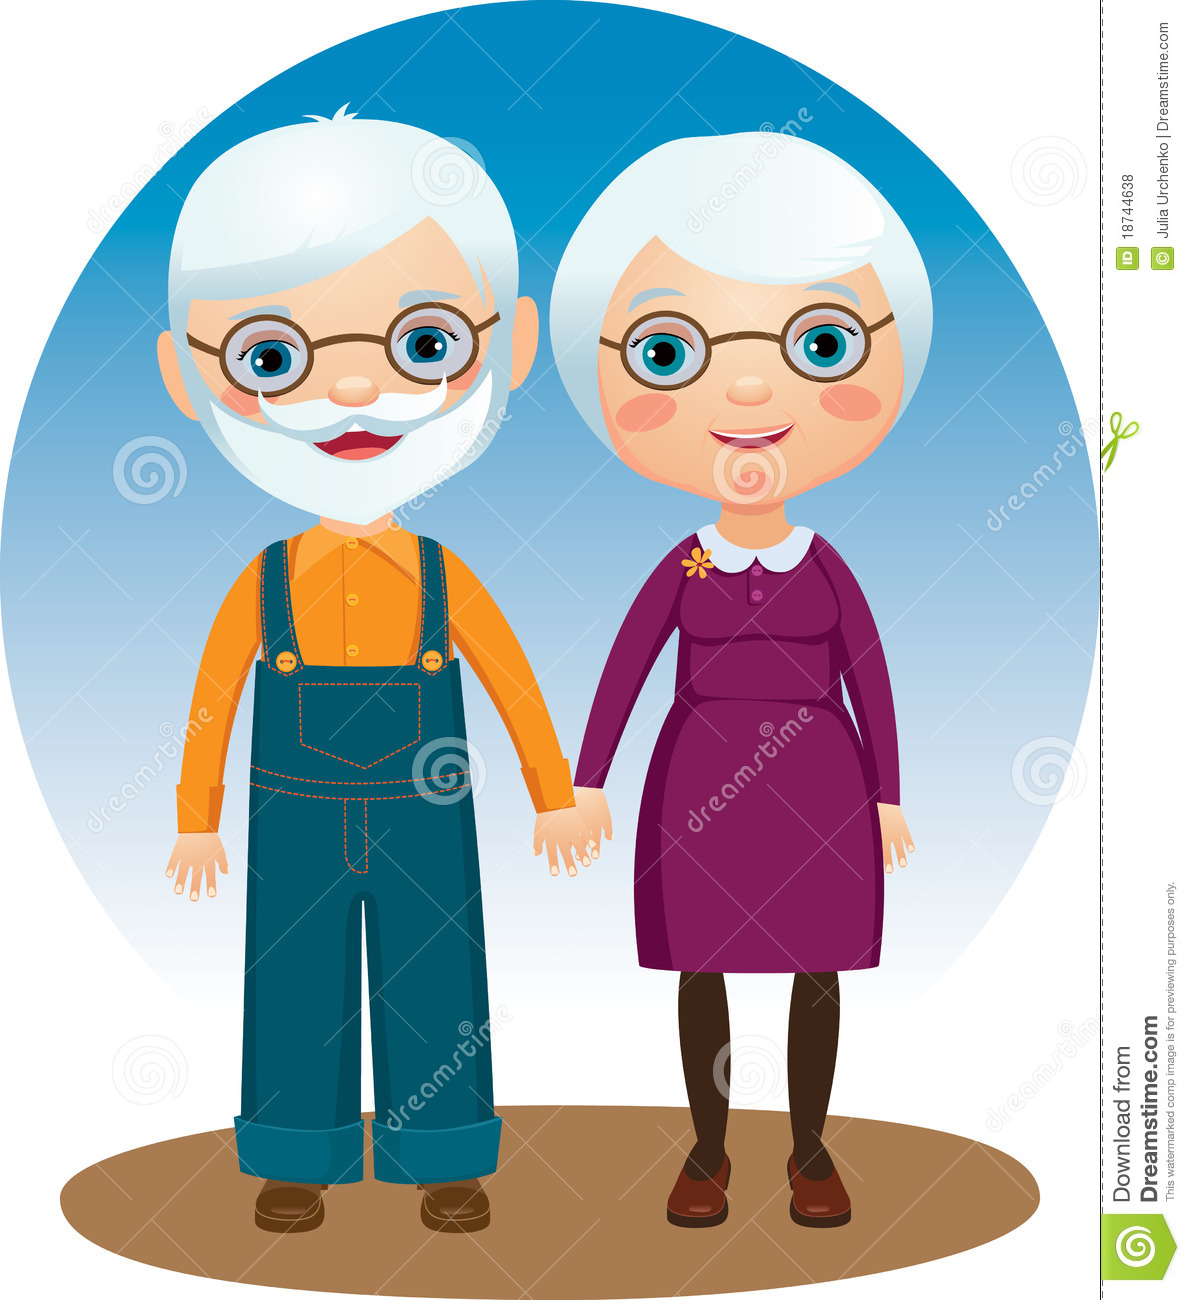 Grandparents Royalty Free Stock Photos - Image: 18744638